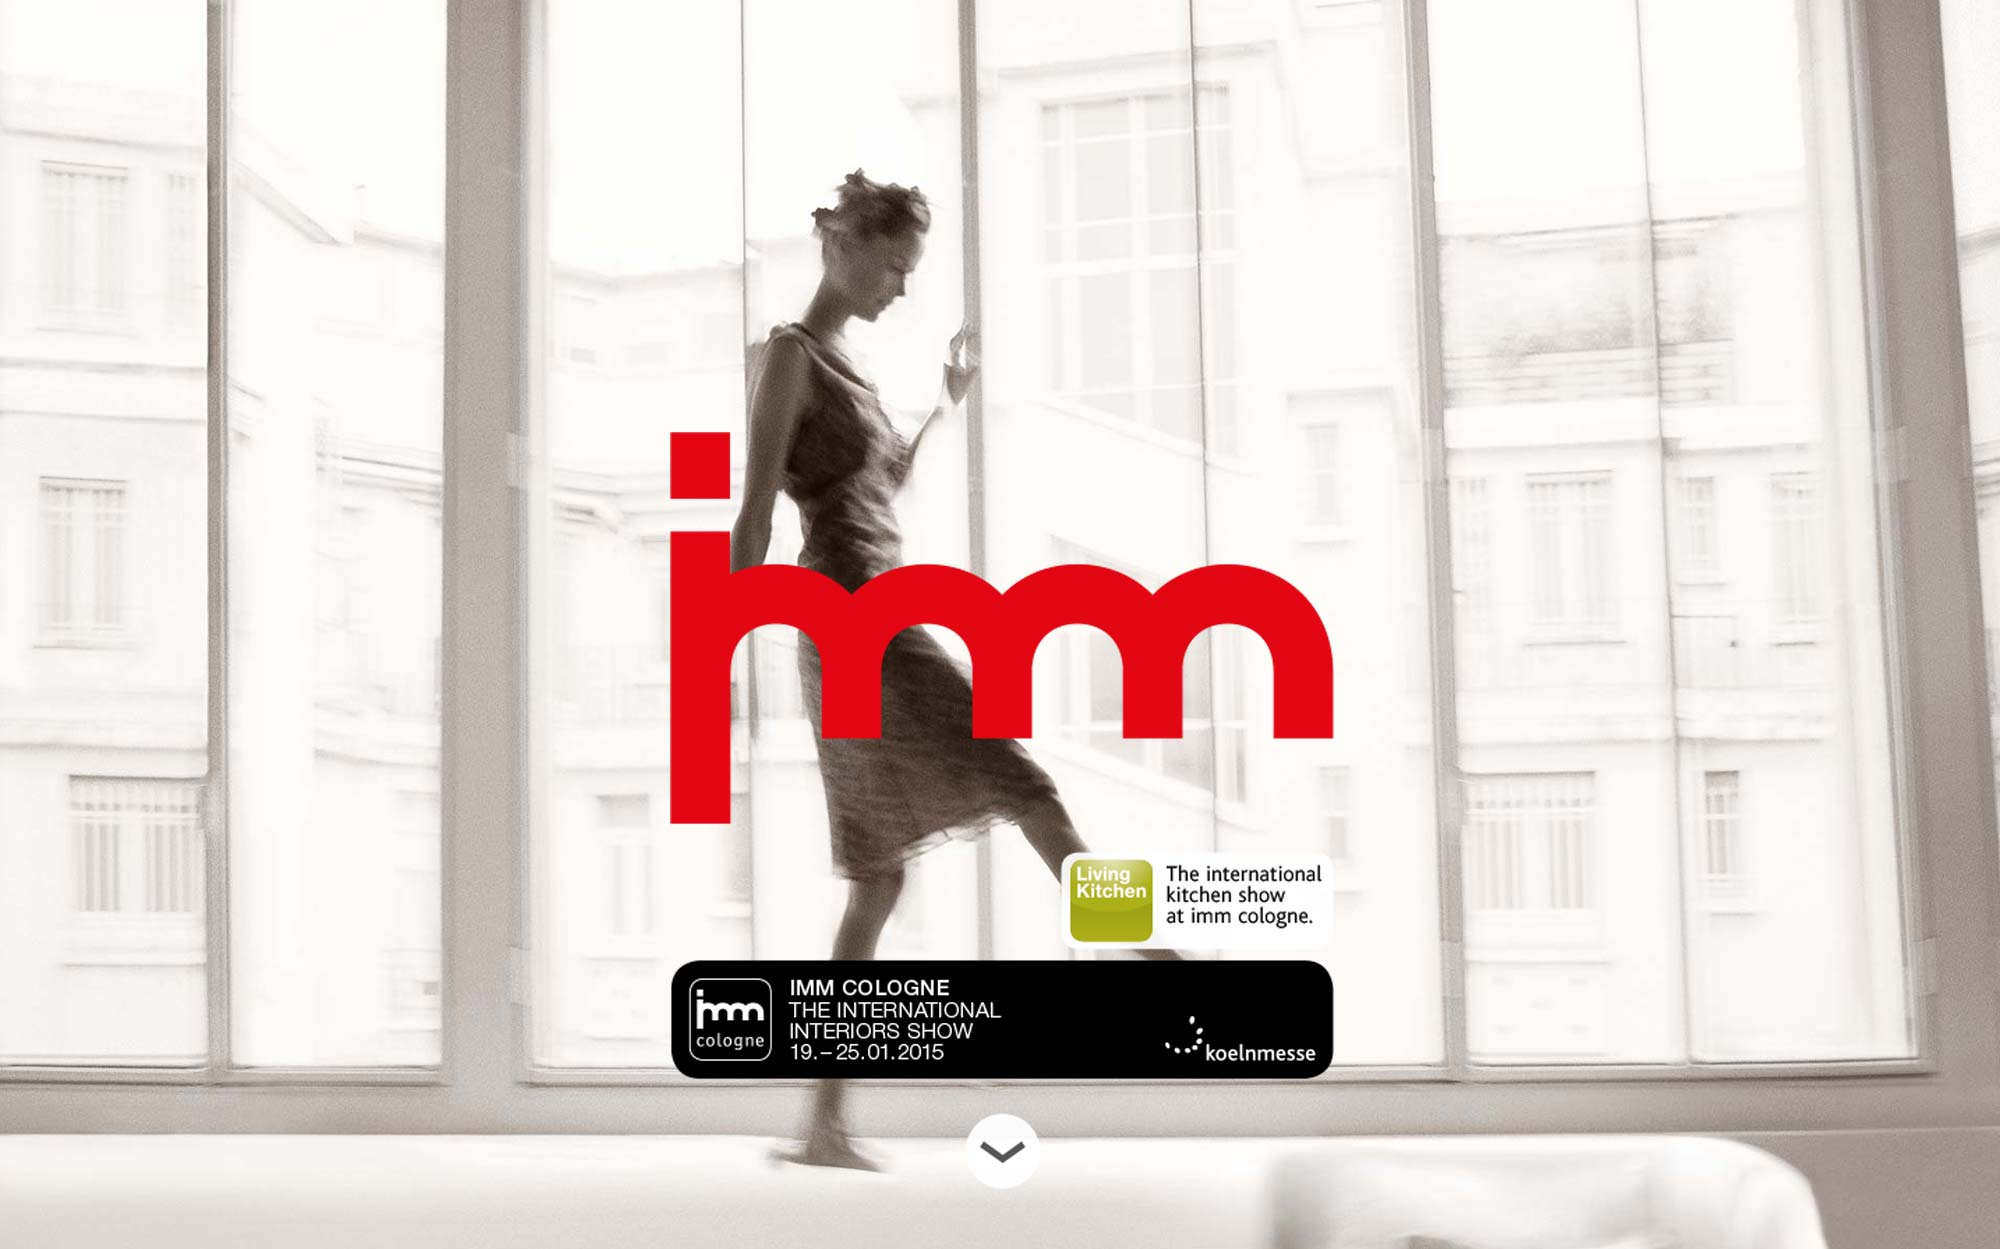 imm-2015-a-guide-to-the-design-show  IMM 2015: A guide to the design show imm 2015 a guide to the design show